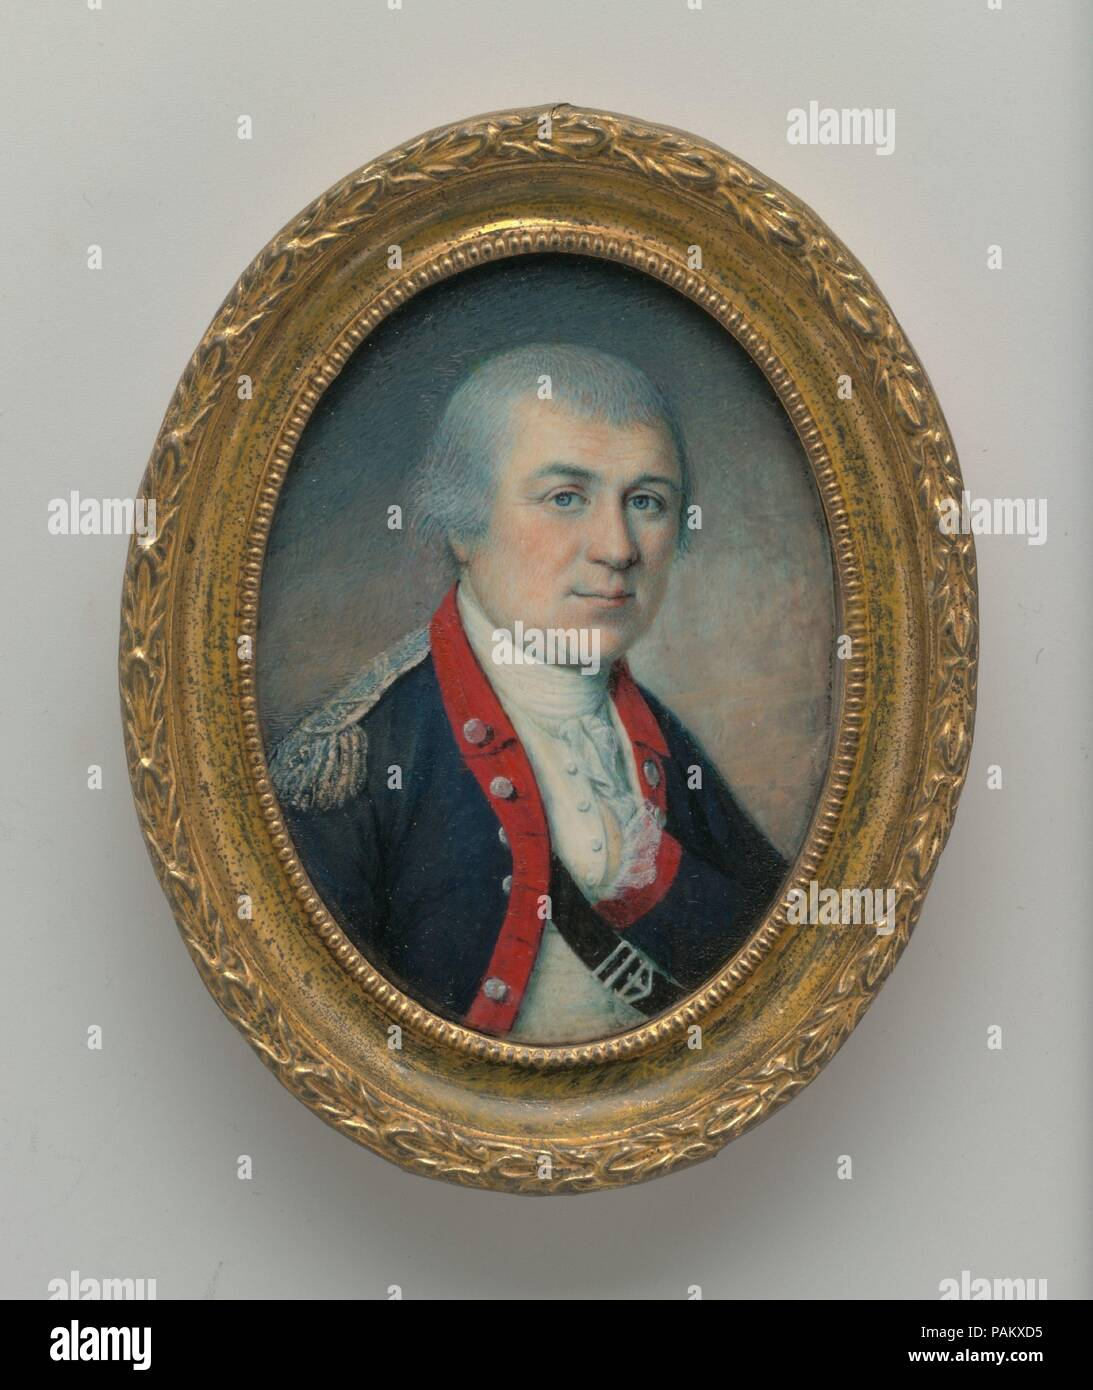 General Henry Knox. Artist: Charles Willson Peale (American, Chester, Maryland 1741-1827 Philadelphia, Pennsylvania). Dimensions: 2 7/8 x 2 1/8 in. (7.3 x 5.2 cm). Date: 1778.  The sitter (1750-1806), a Boston bookseller and artillery expert who would achieve fame in General Washington's army, was painted by Peale at Valley Forge in late May 1778, just before the Battle of Monmouth. Museum: Metropolitan Museum of Art, New York, USA. Stock Photo